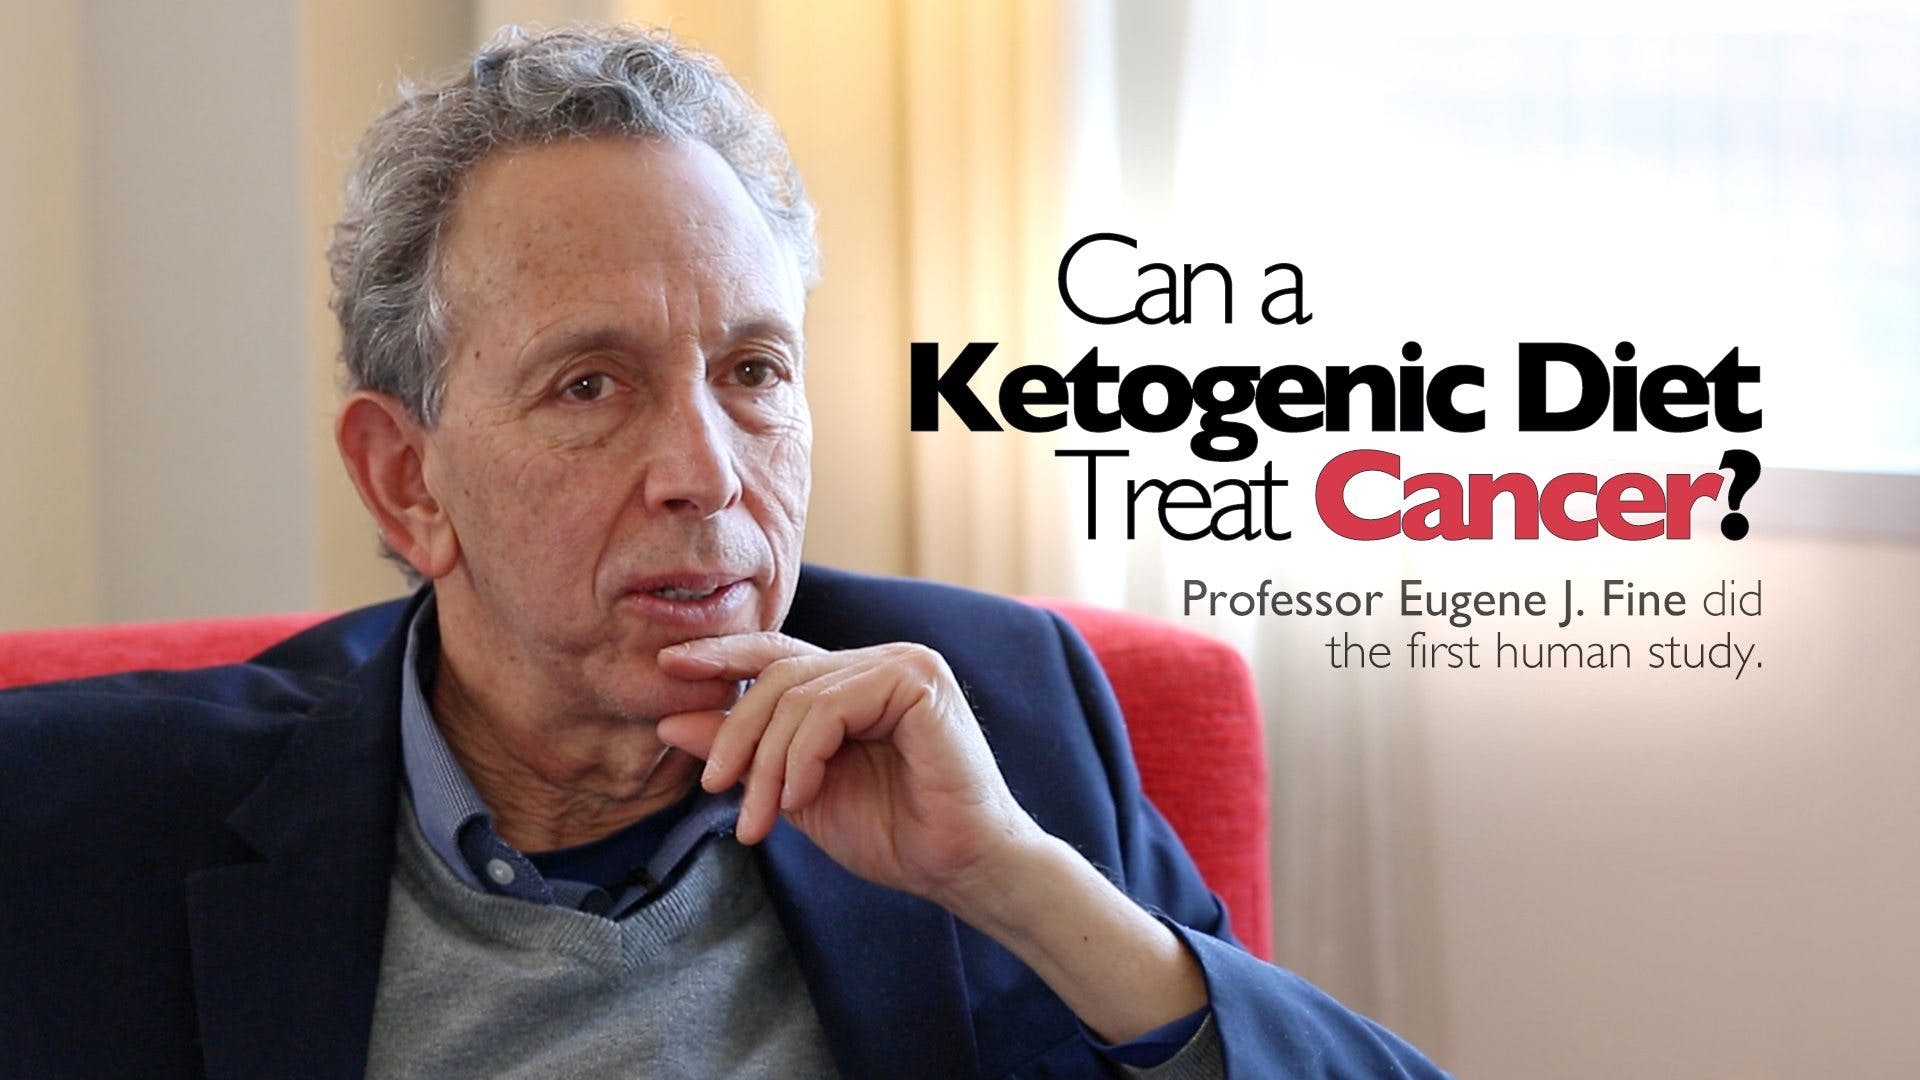 Can a Ketogenic Diet Treat Cancer?